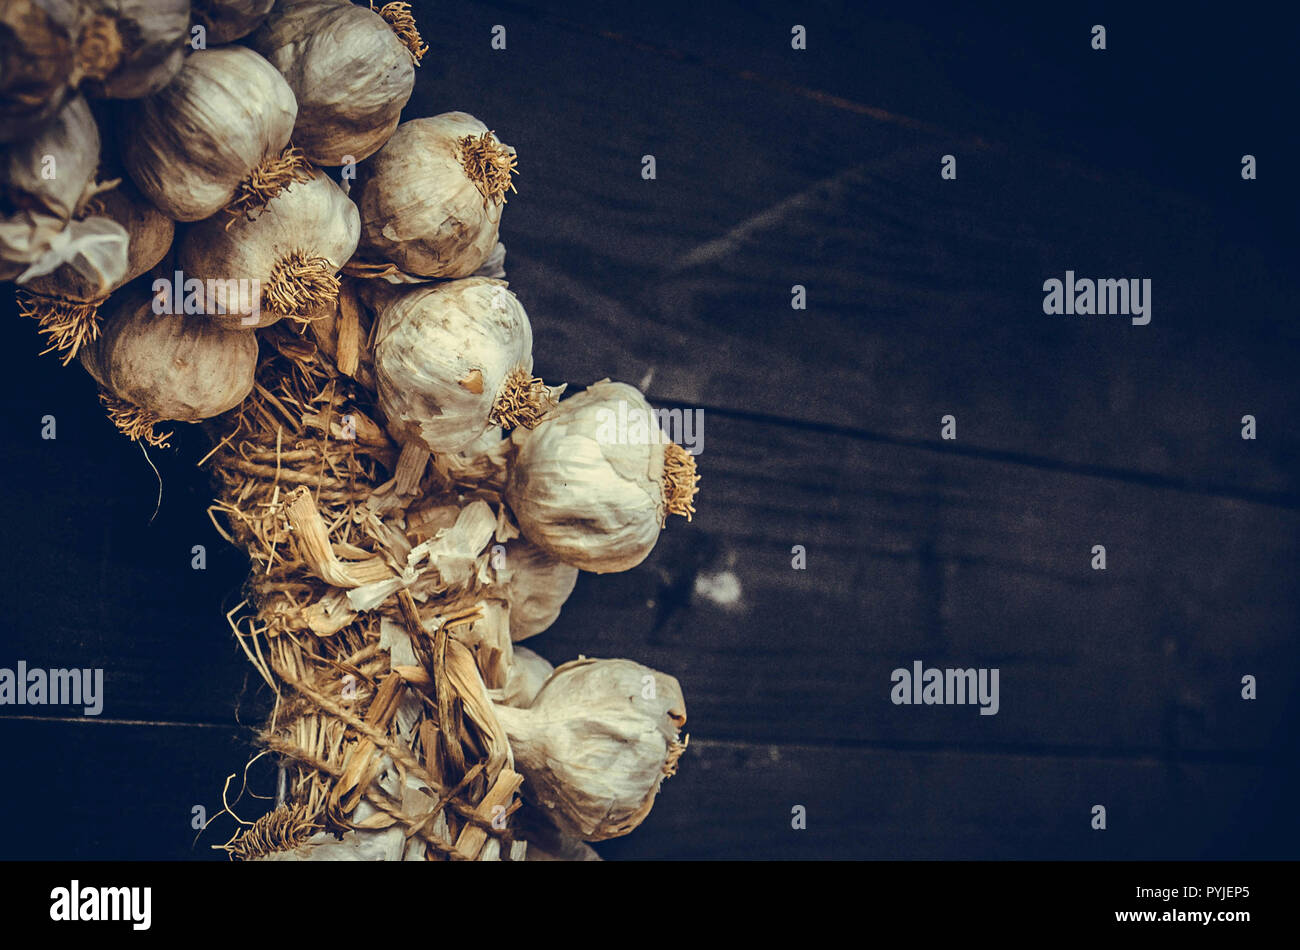 Garlic hanging on an old wooden fence. Harvest of garlic. Copy spaces. - Stock Image